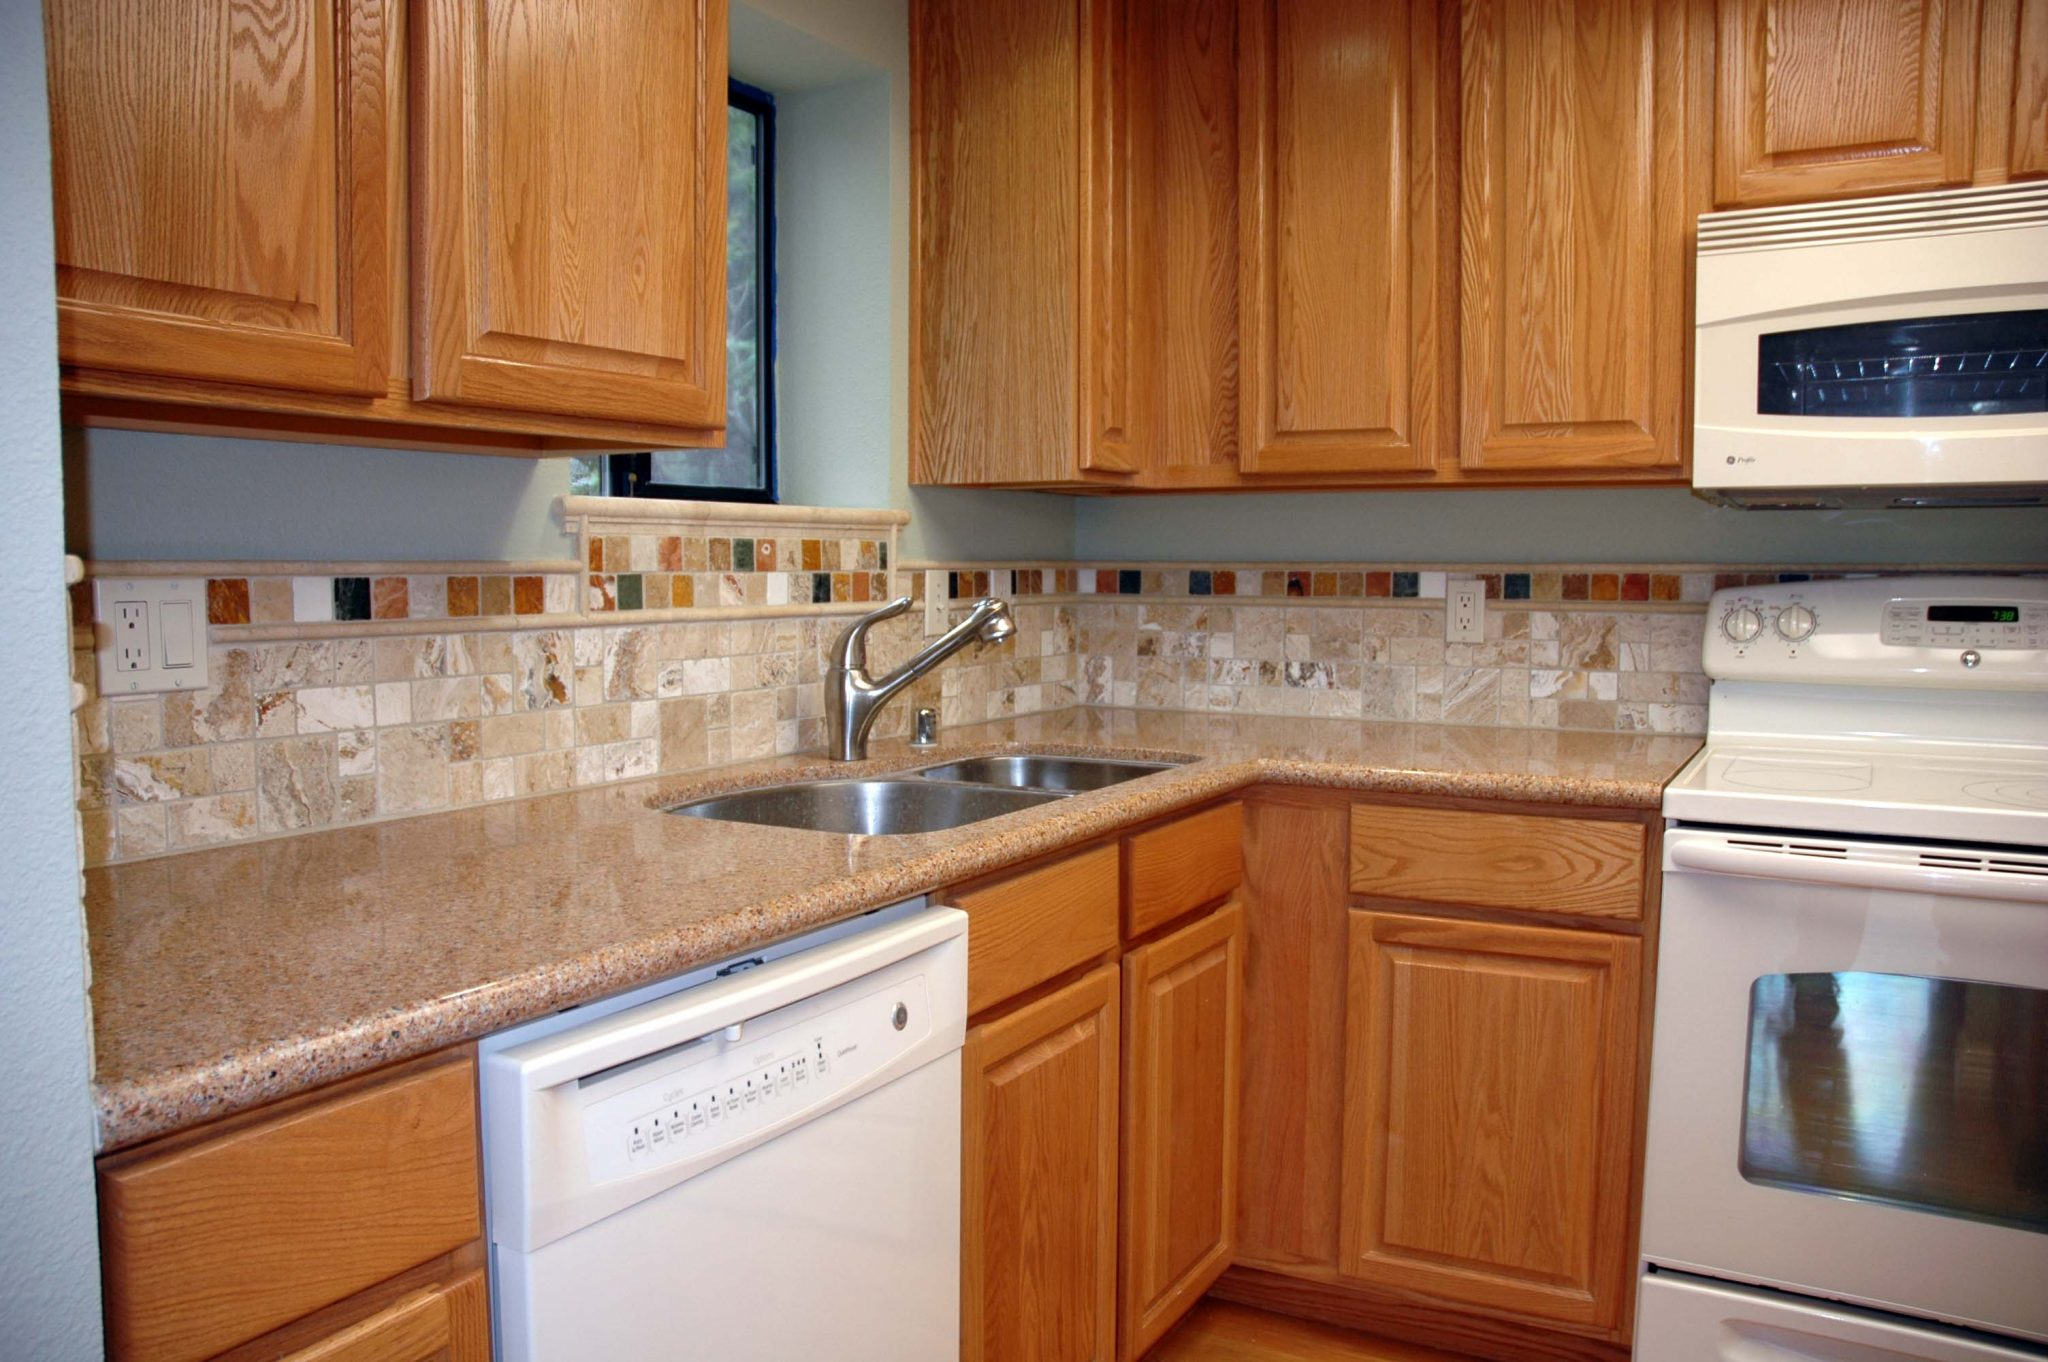 kitchen cabinets backsplash ideas photo - 8